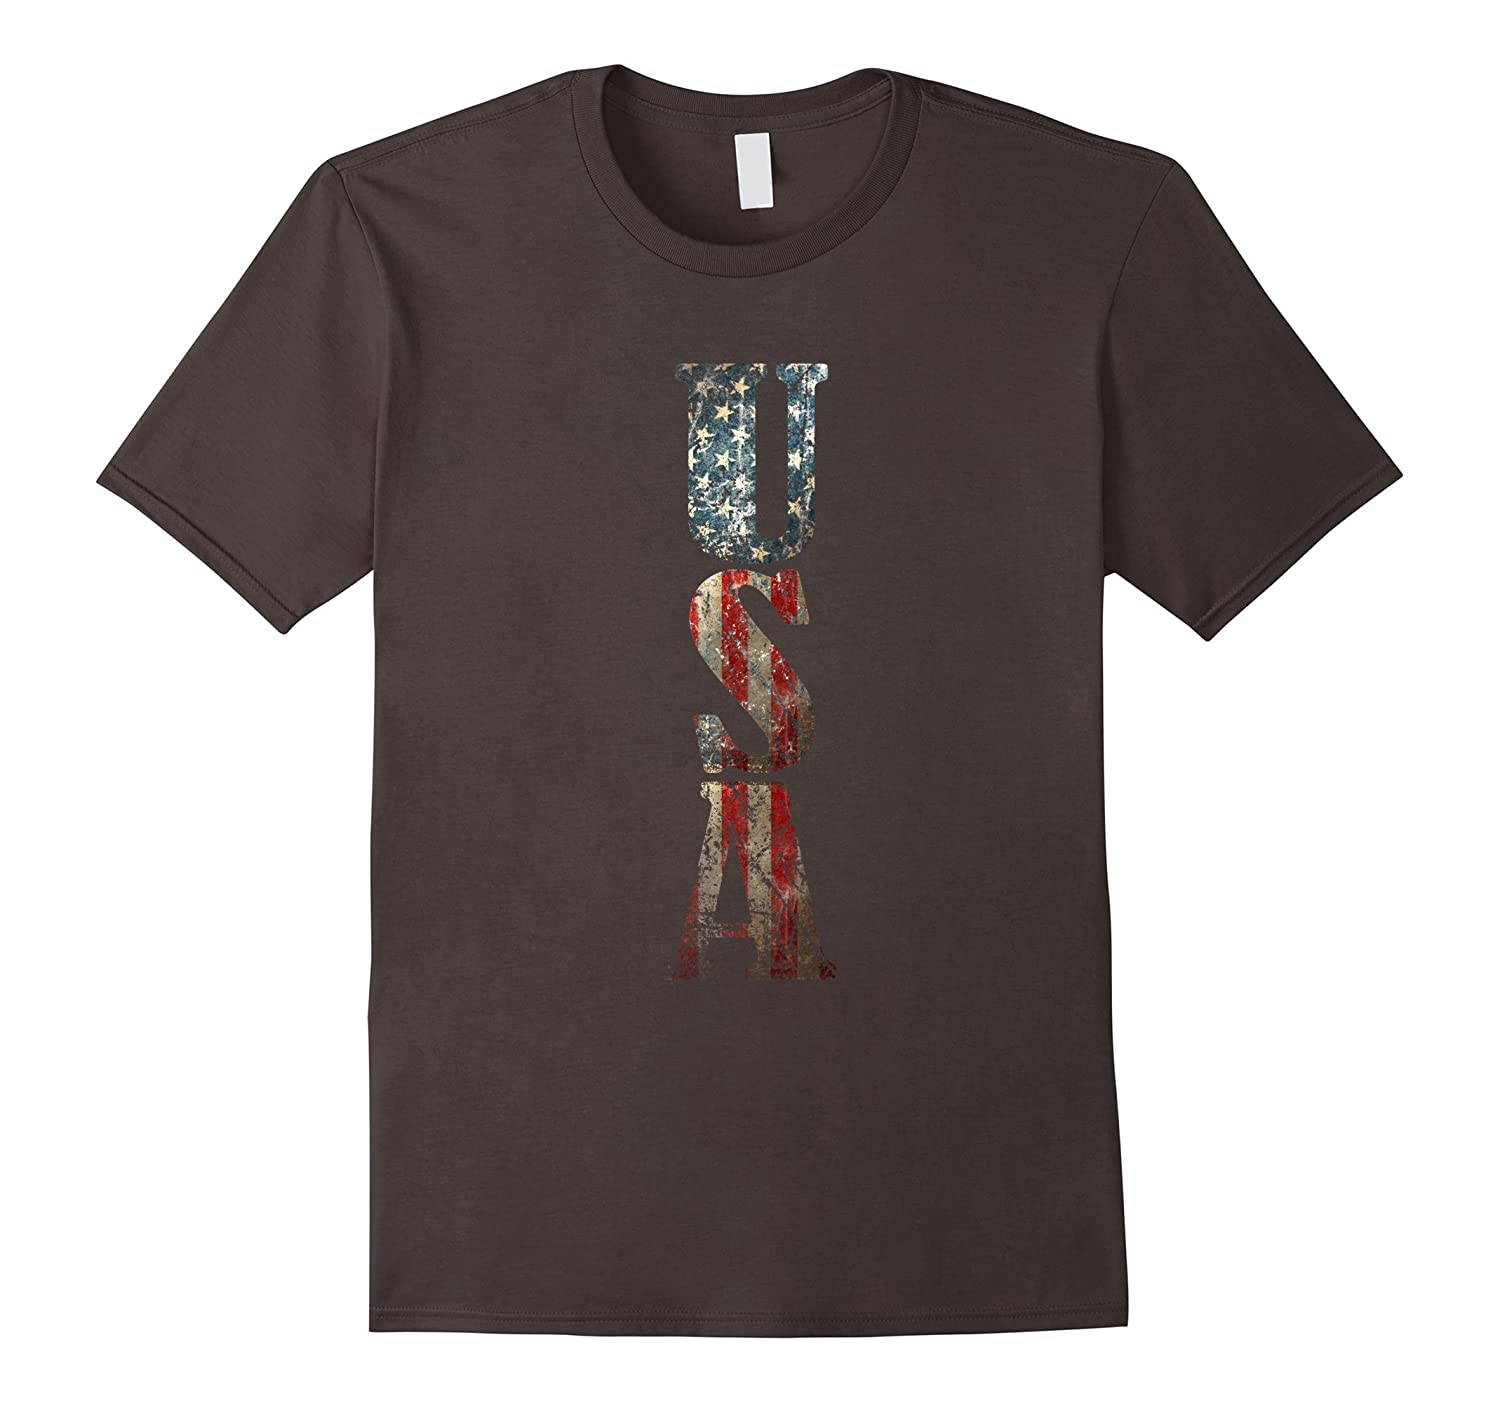 Vintage Usa T Shirt Distressed Usa Tee For 4th Of July